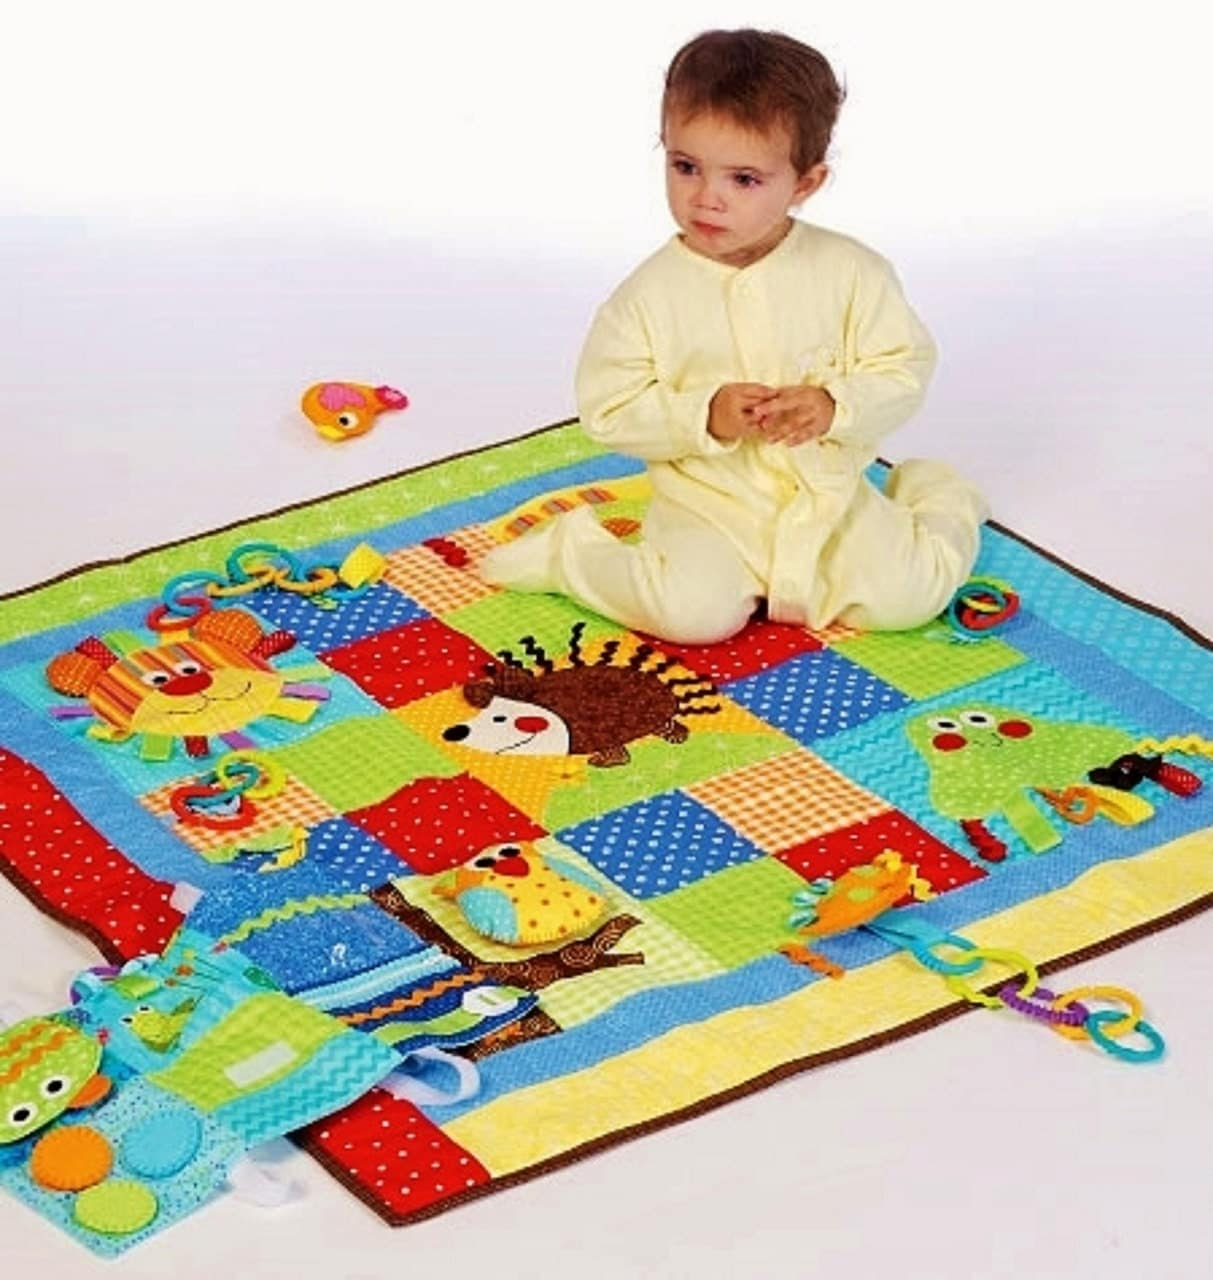 Wee Ones' Play Quilt Pattern Baby Play Mats Pattern : quilted play mat baby - Adamdwight.com